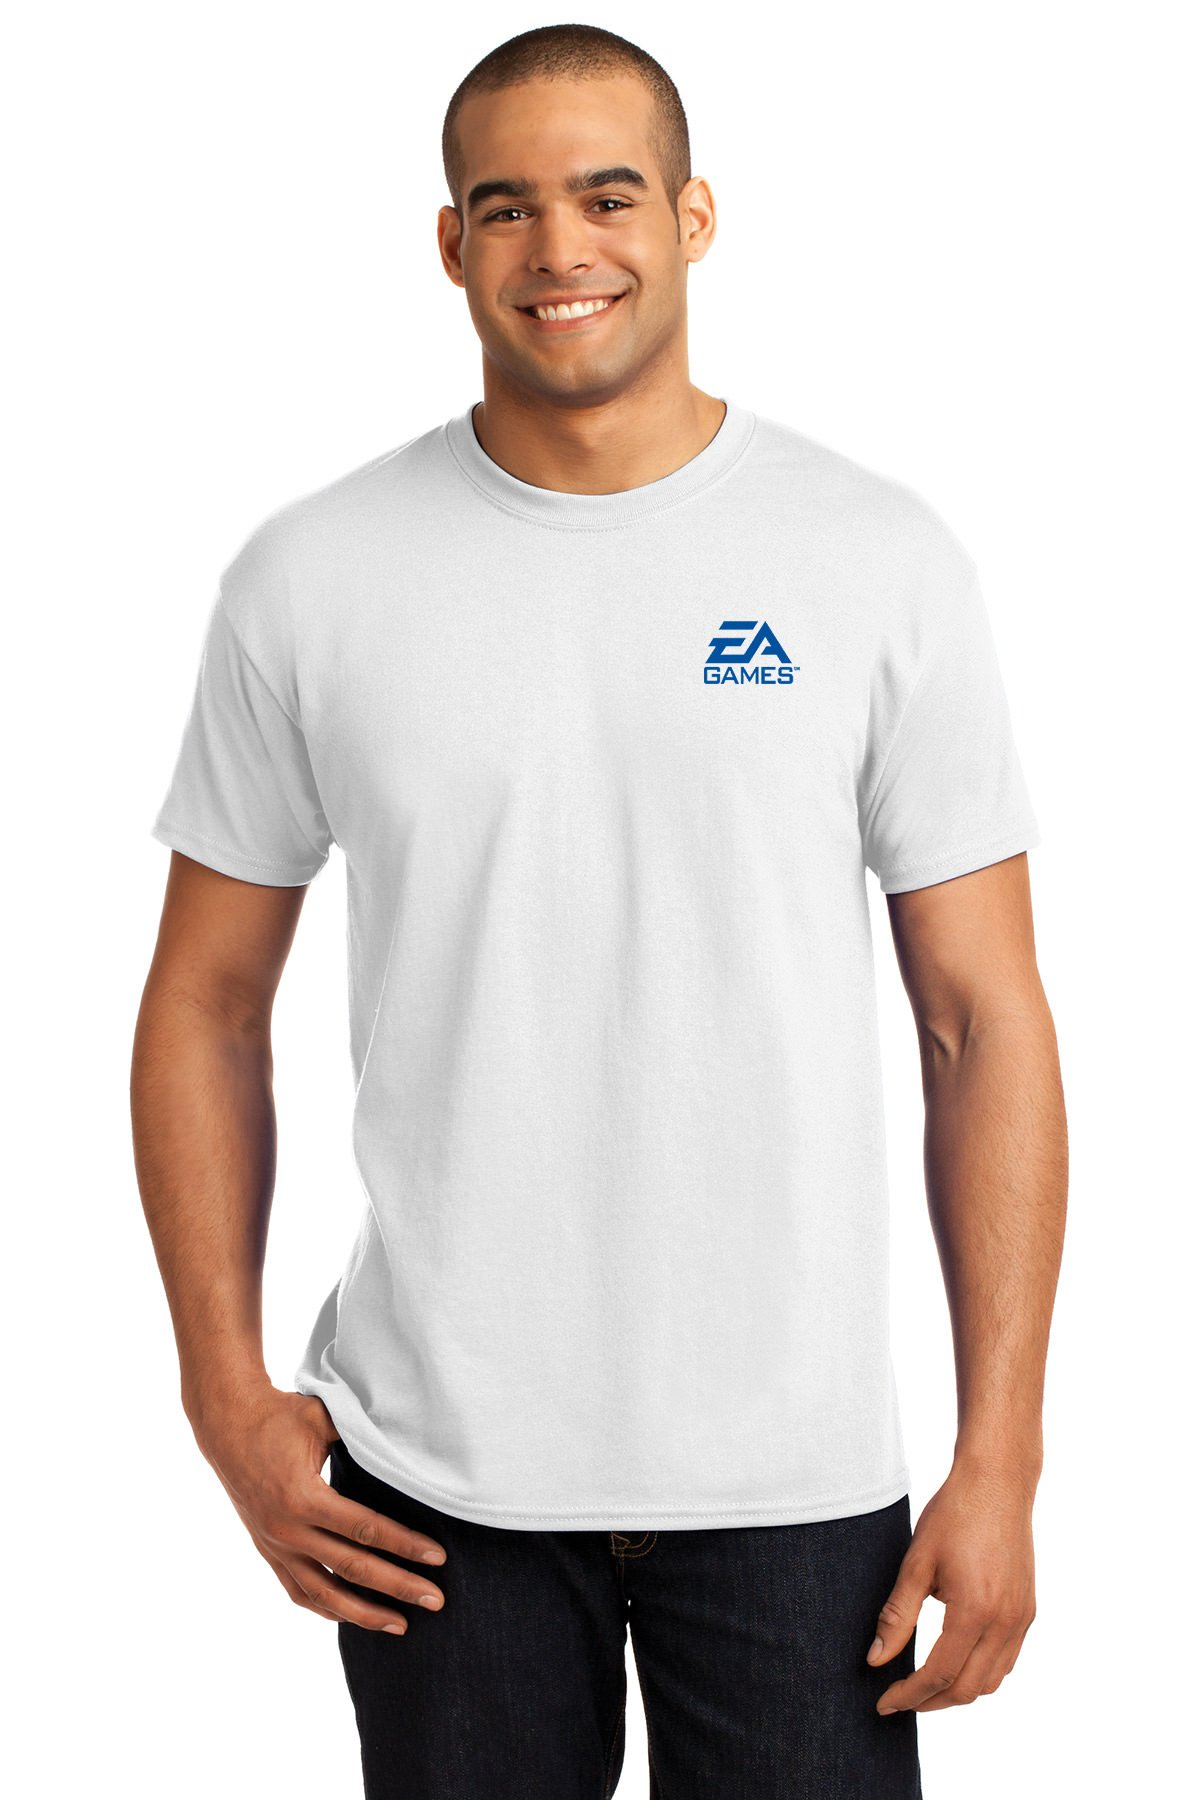 Hanes Cotton & Polyester EcoSmart Men's T-Shirt - 24 Qty - Promotional Product - Imprinted With Your Company Name, Logo or Message (White)